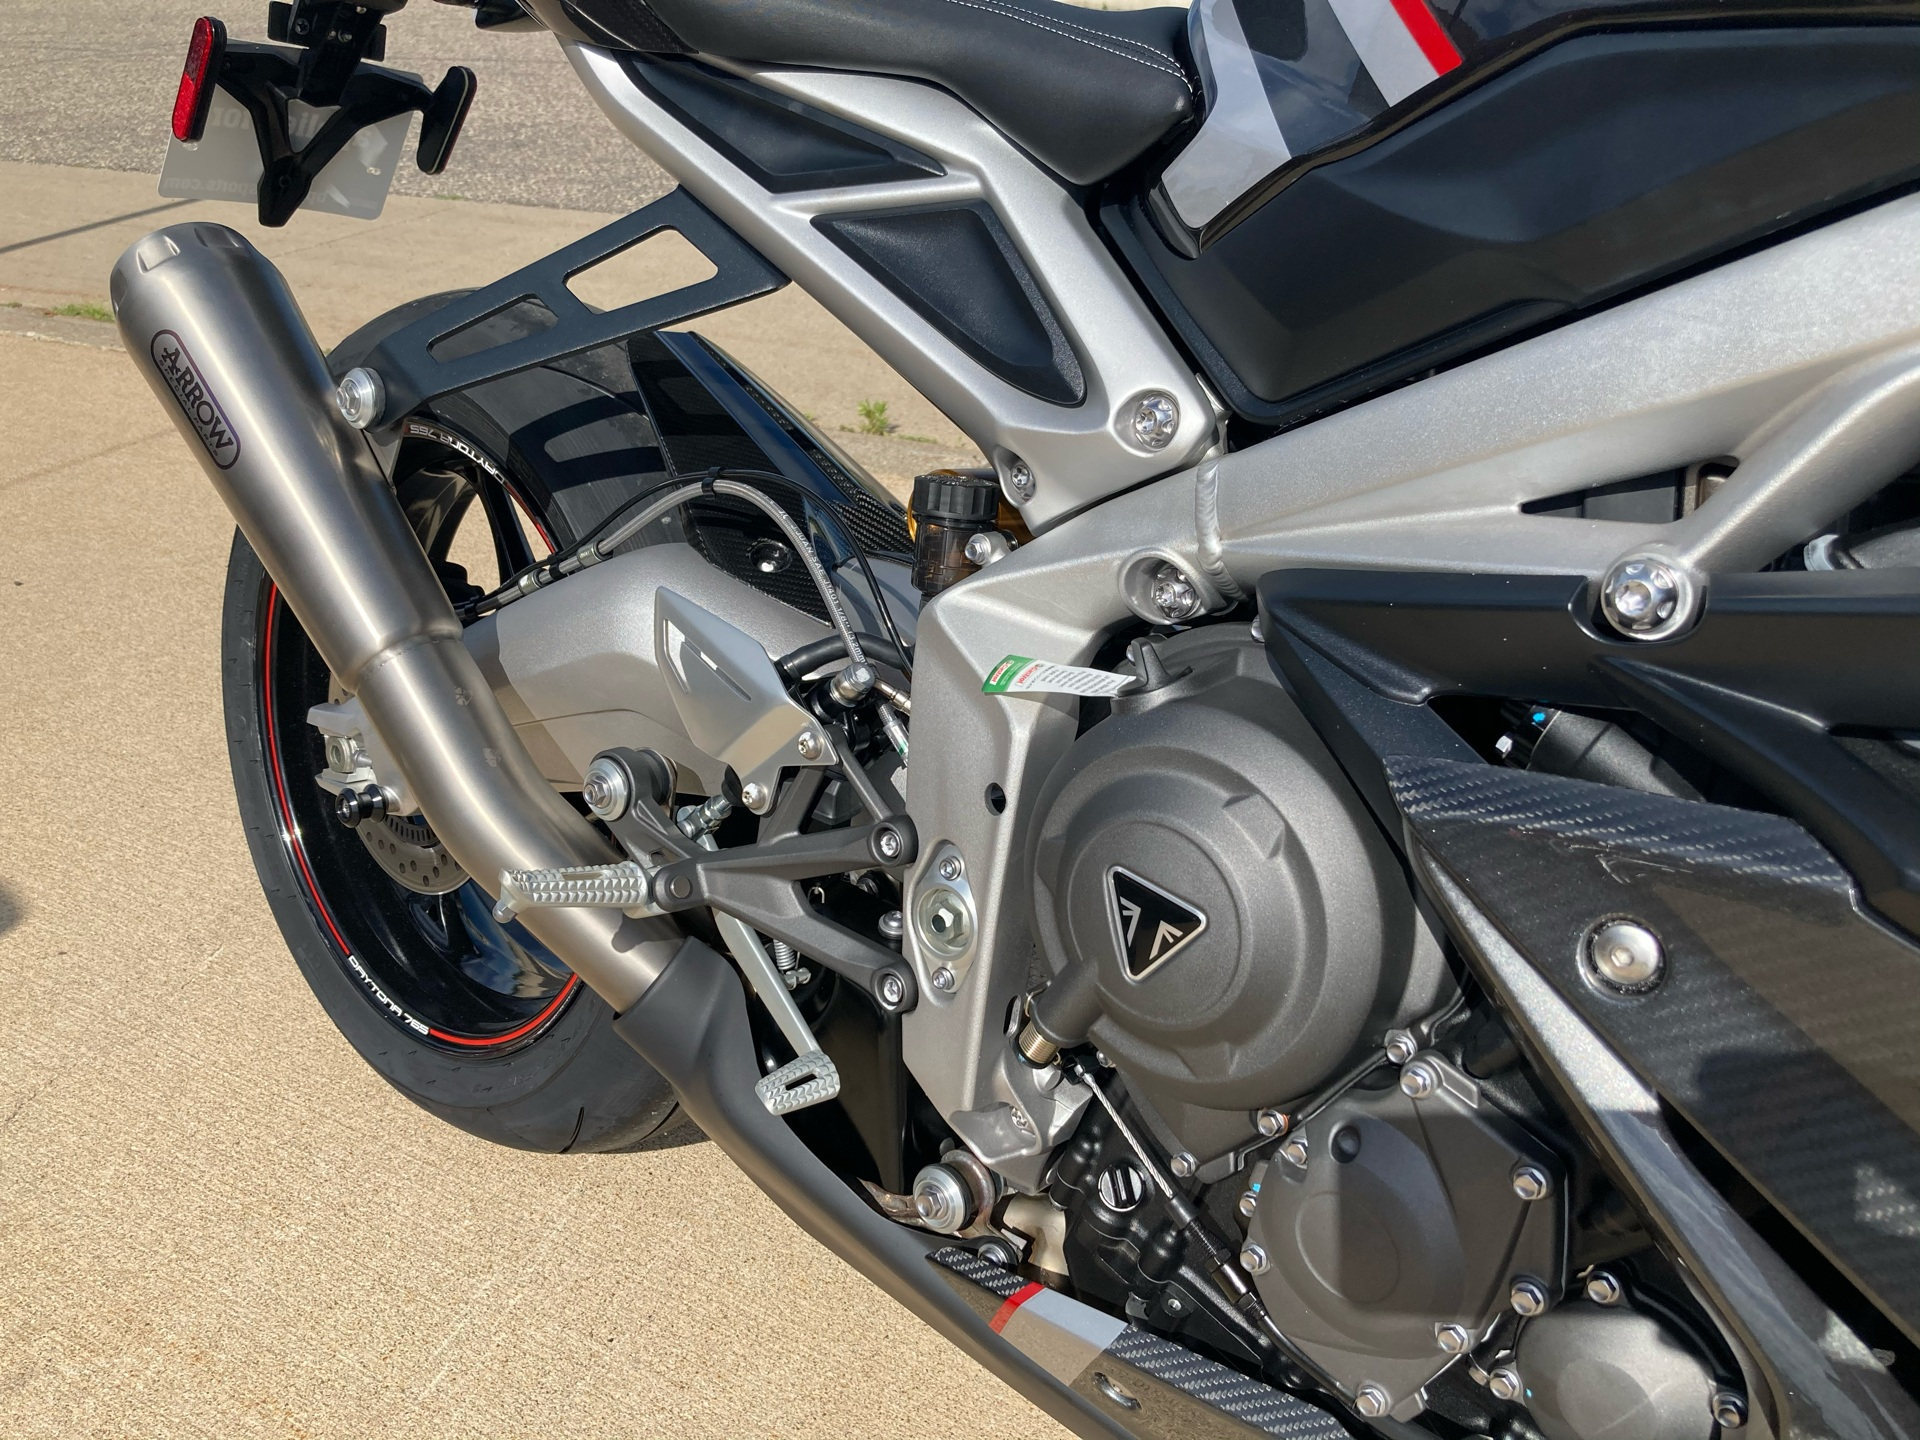 2020 Triumph Daytona Moto 2 Limited Edition in Belle Plaine, Minnesota - Photo 11